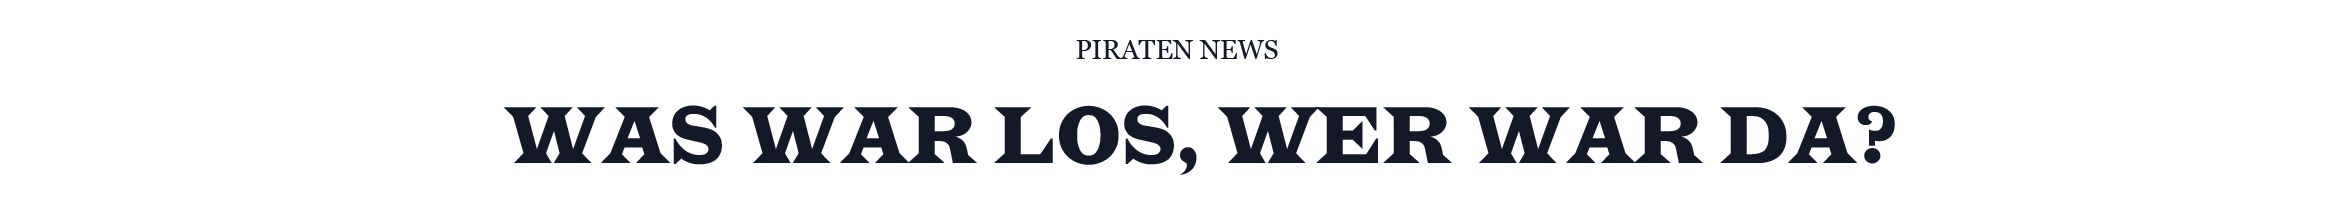 wwl wwd piraten news